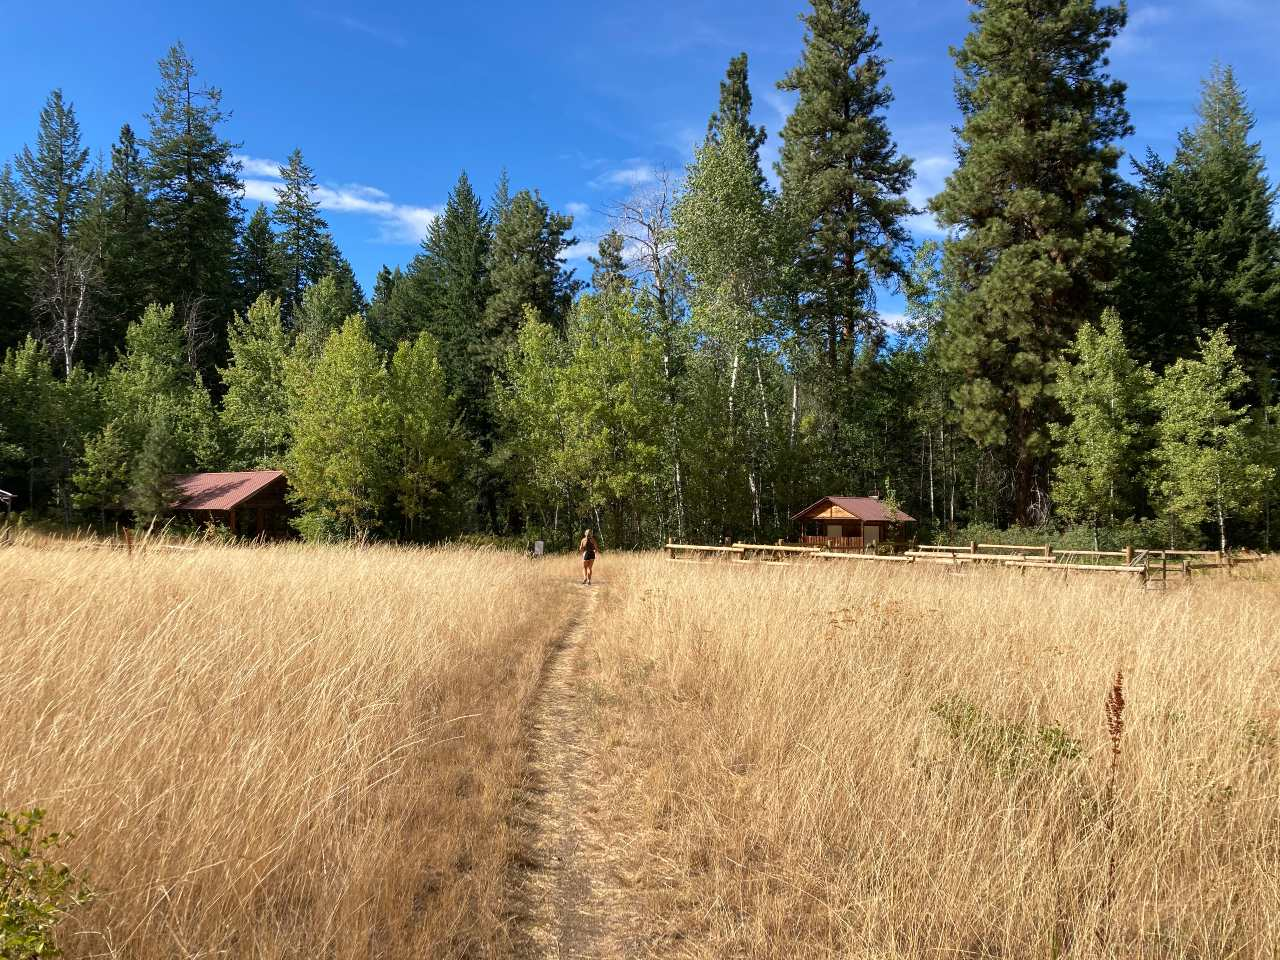 Pastoral scene in the Methow Valley.